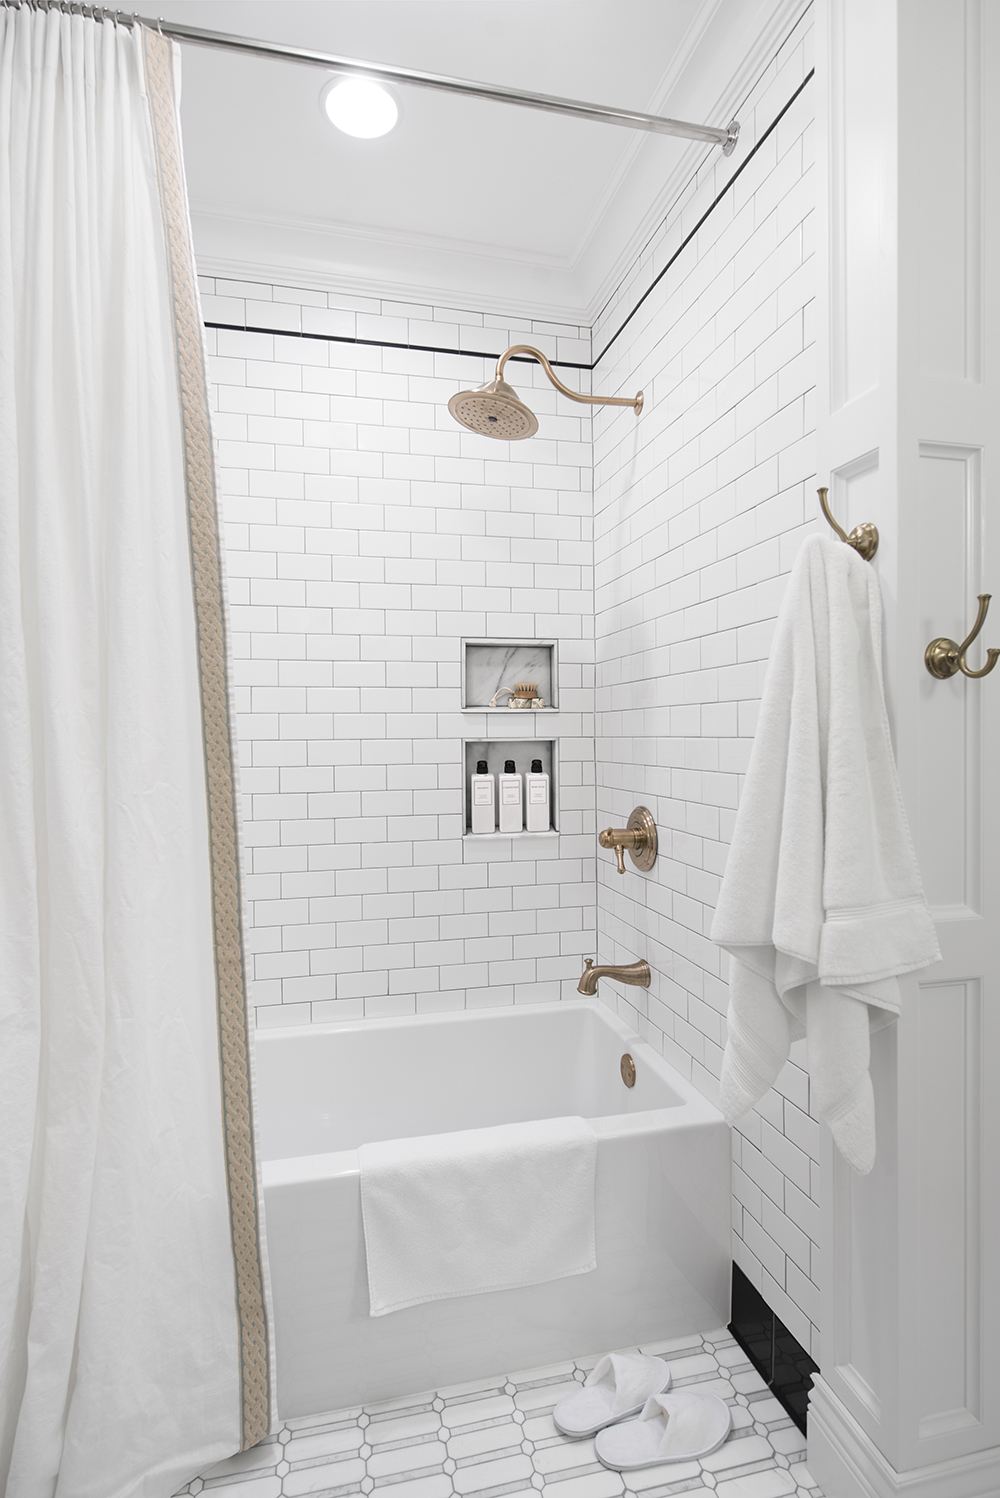 Guest Bathroom Renovation Recap - roomfortuesday.com